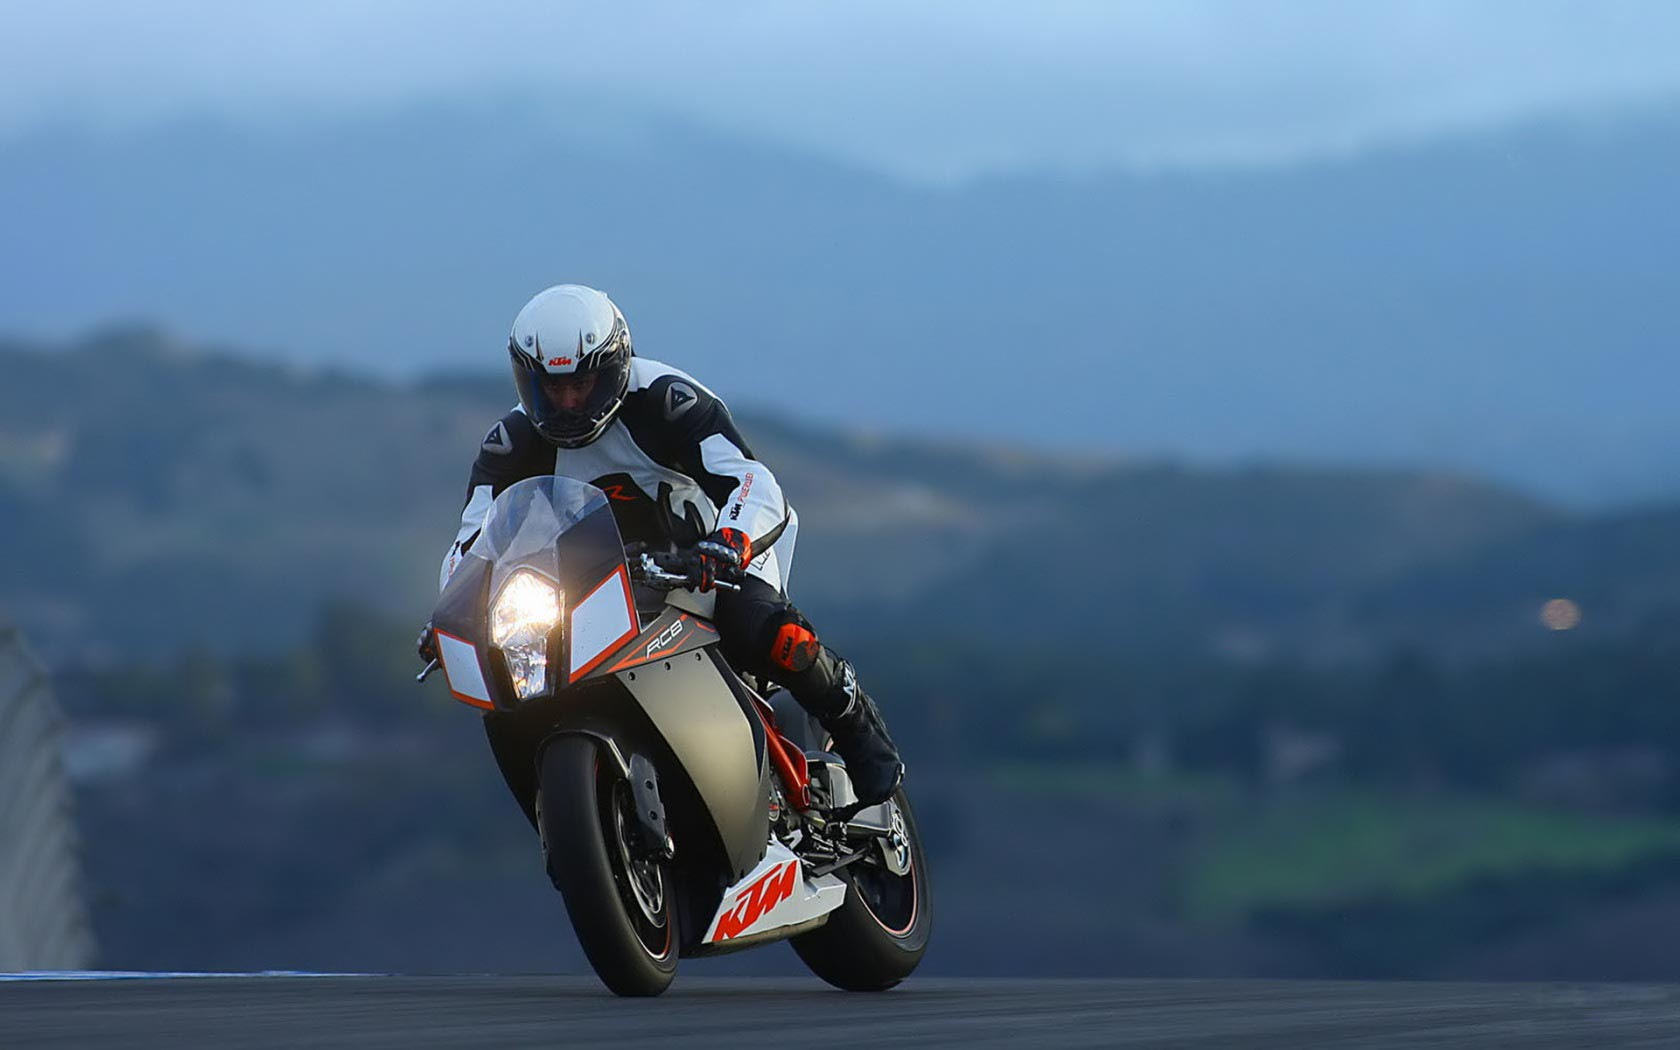 Ktm RC8 Custom   wallpaper 1680x1050